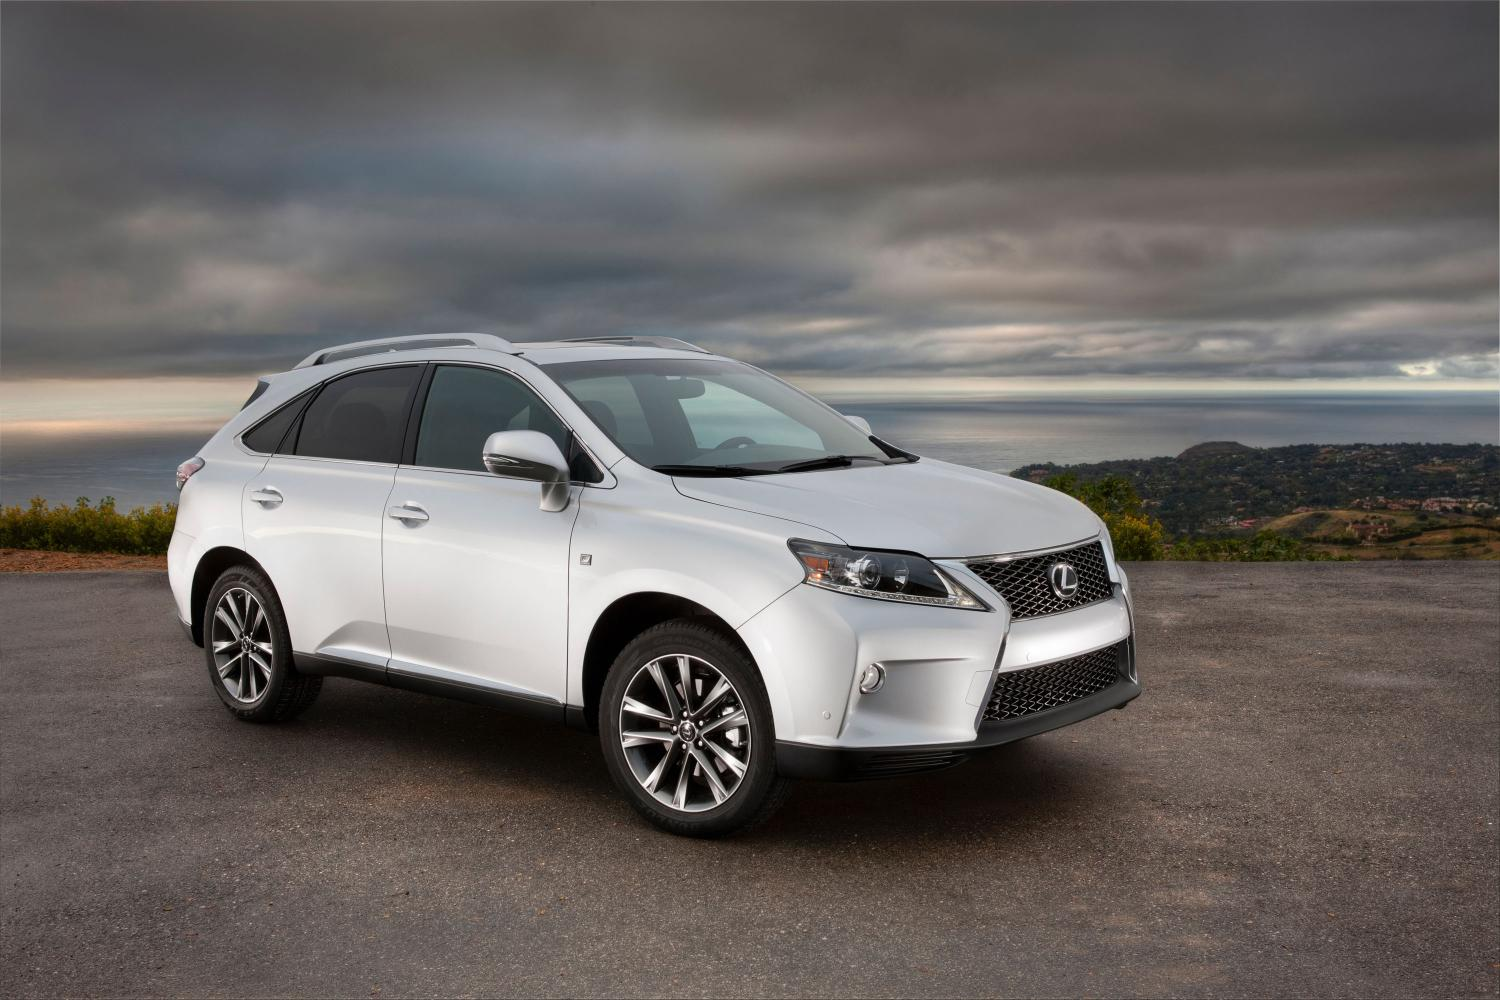 Lexus Prices 2014 Rx Lineup In The Us Autoevolution